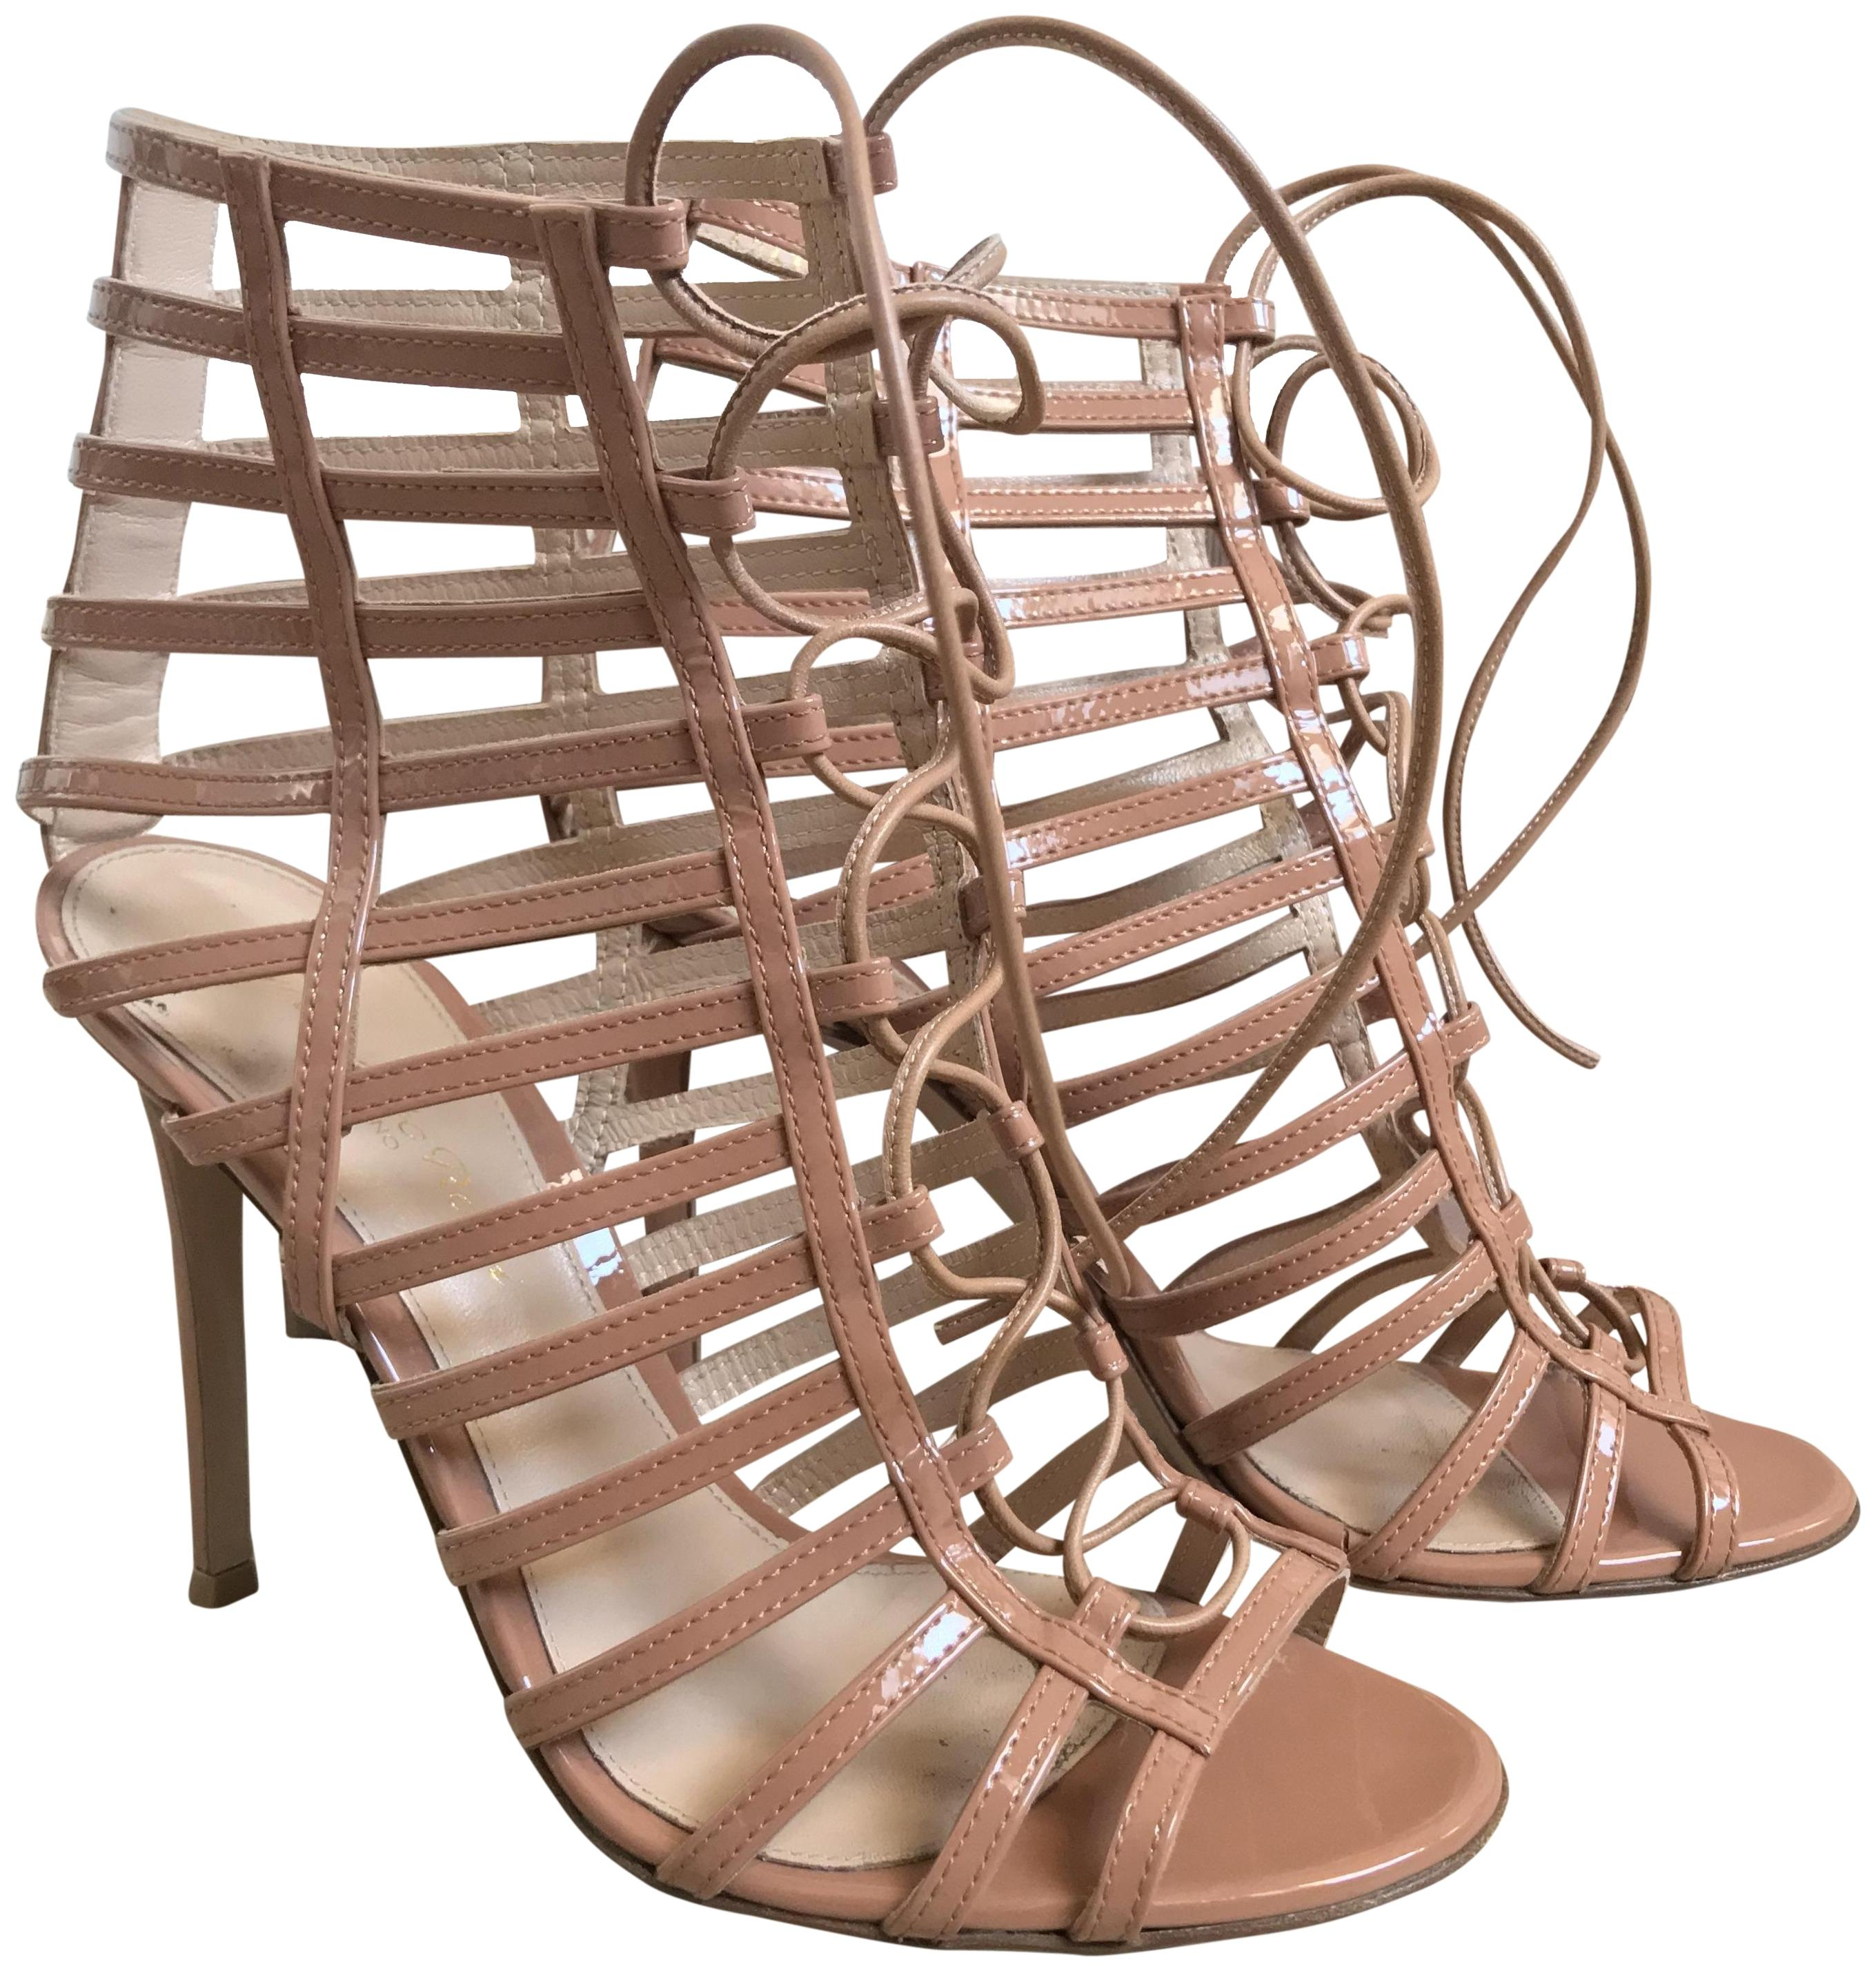 Gianvito Rossi Beige G30638.15ric.verpowd Sandals Size EU 37 (Approx. US 7) Regular (M, B)